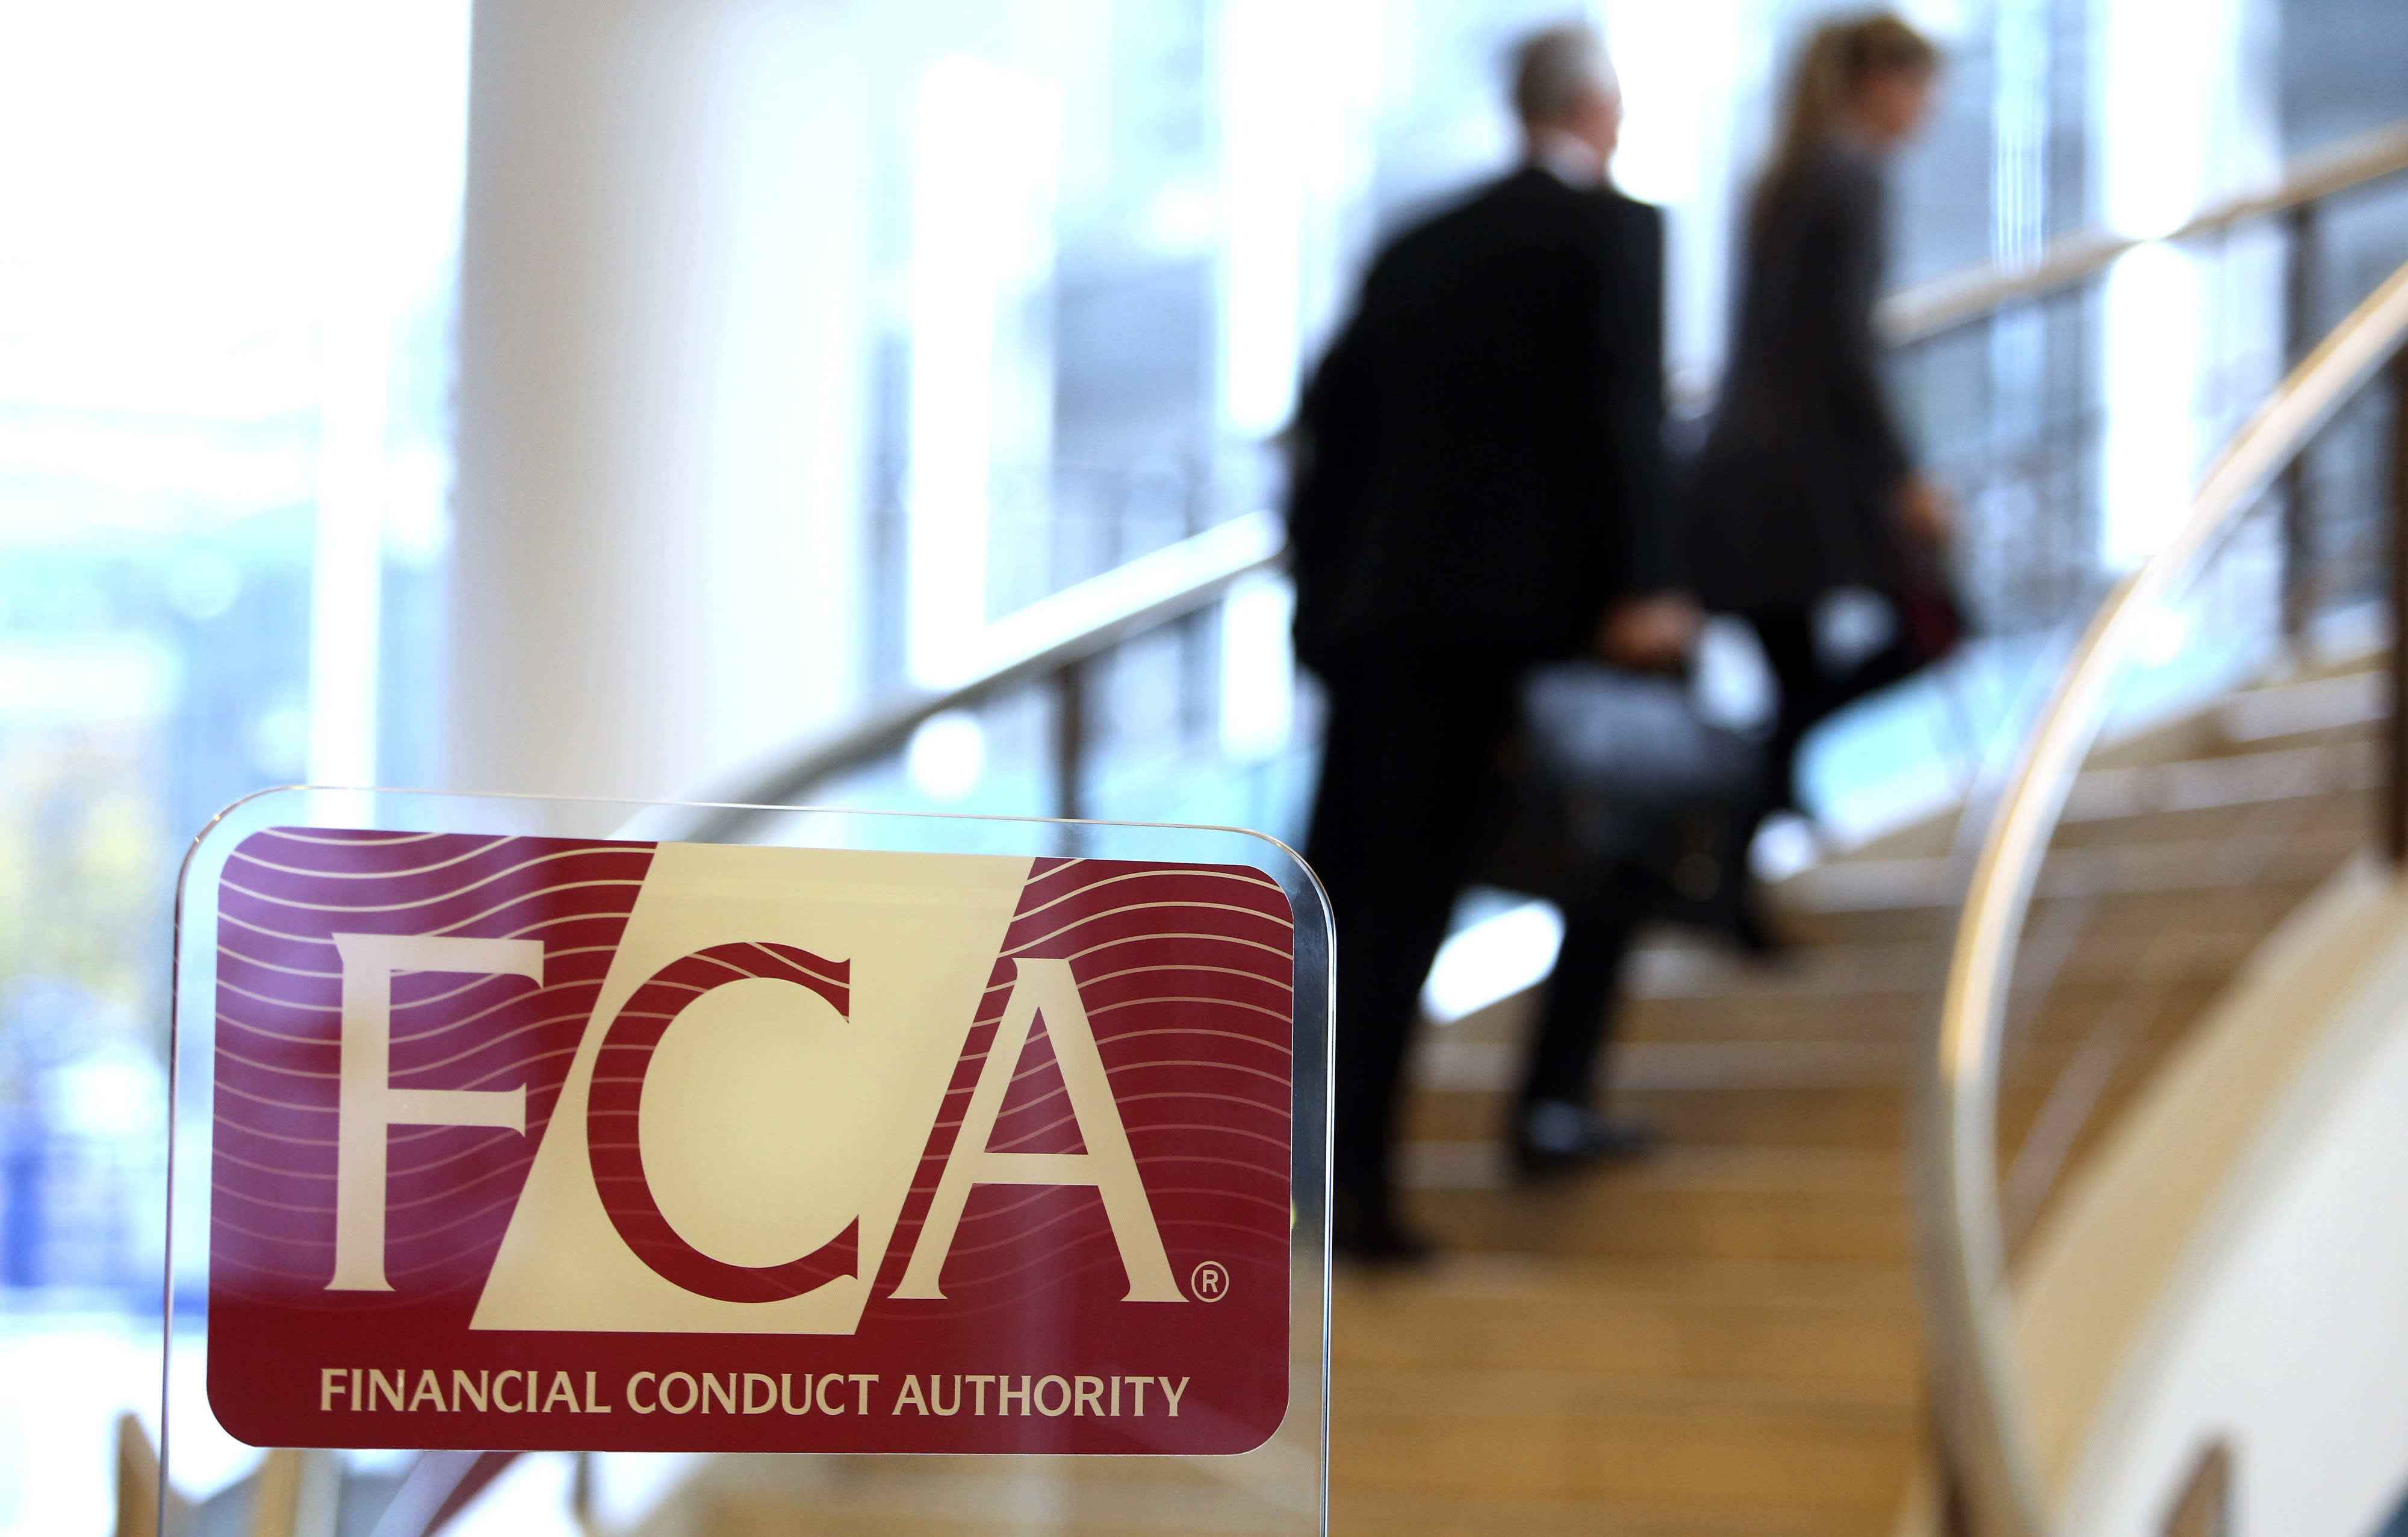 FCA will act on unfair pricing